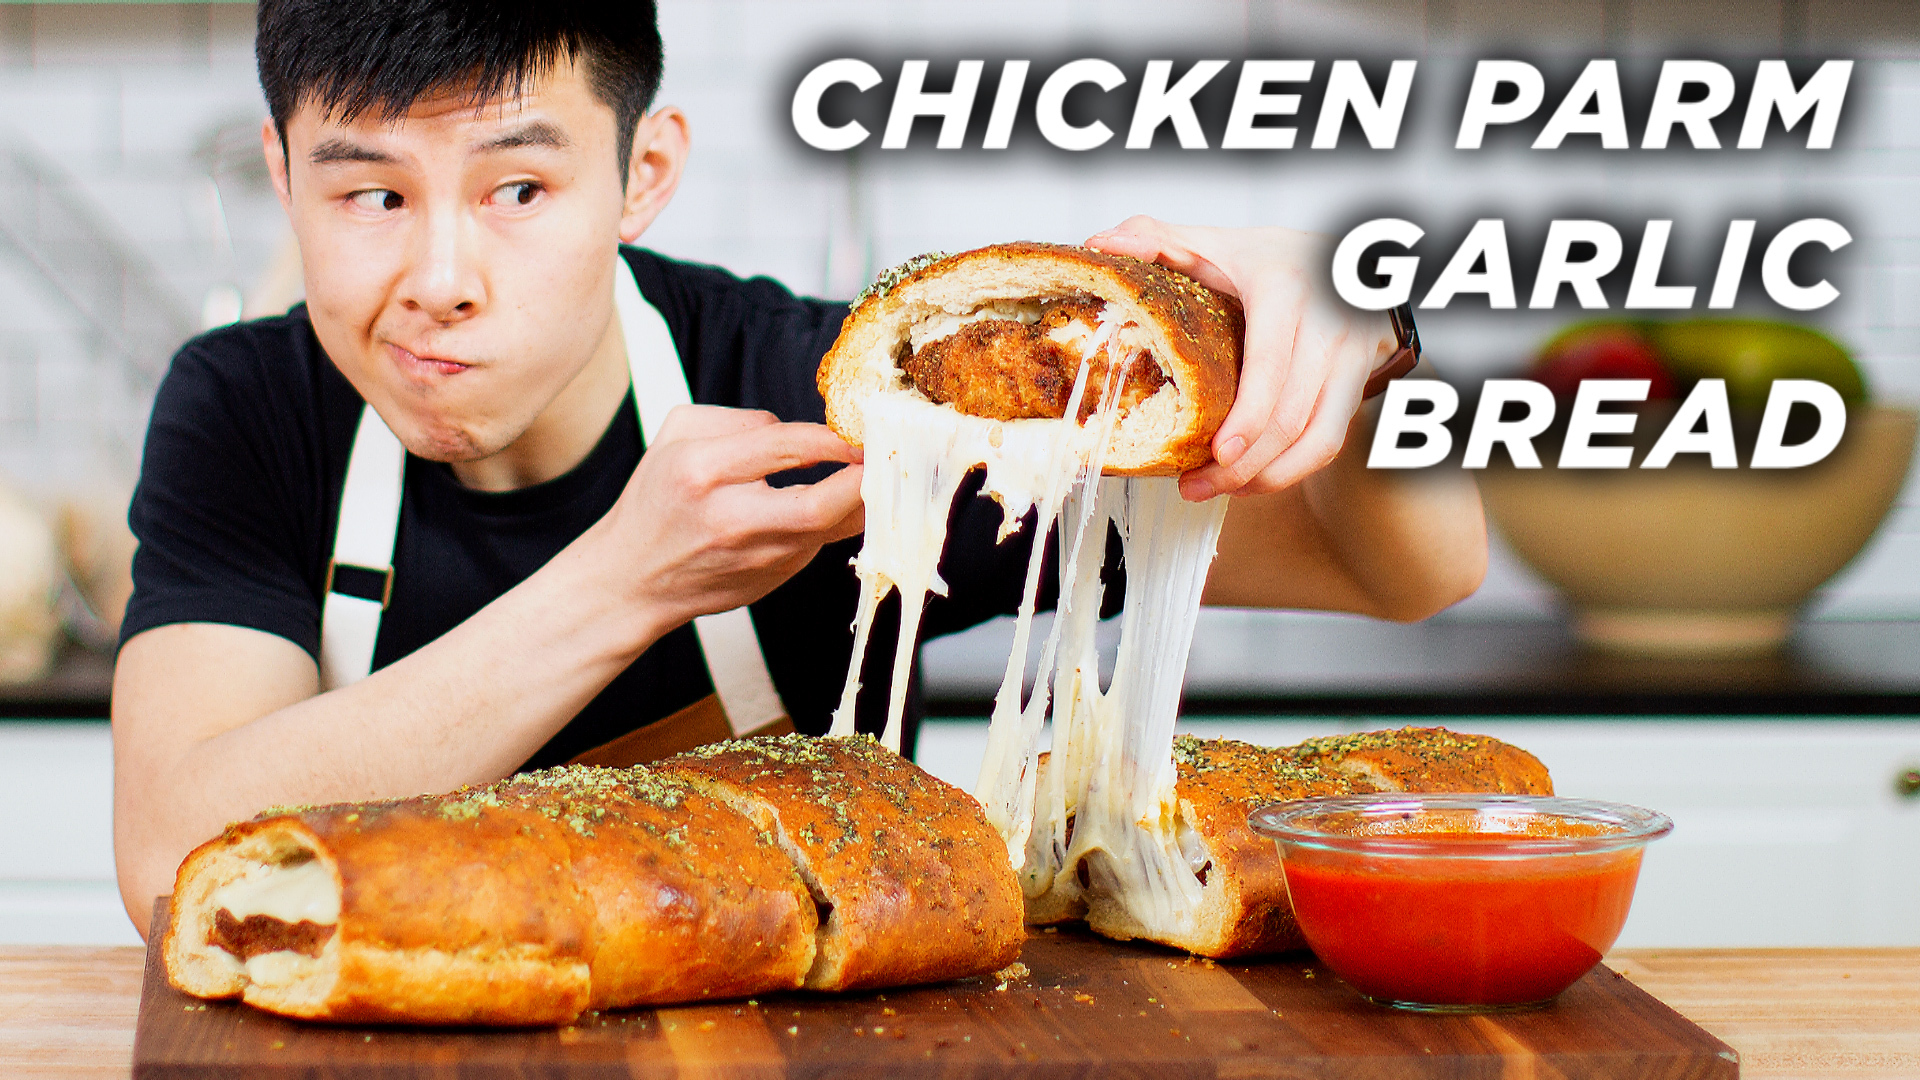 Alvin holds up a giant piece of cheesy chicken parm garlic bread.